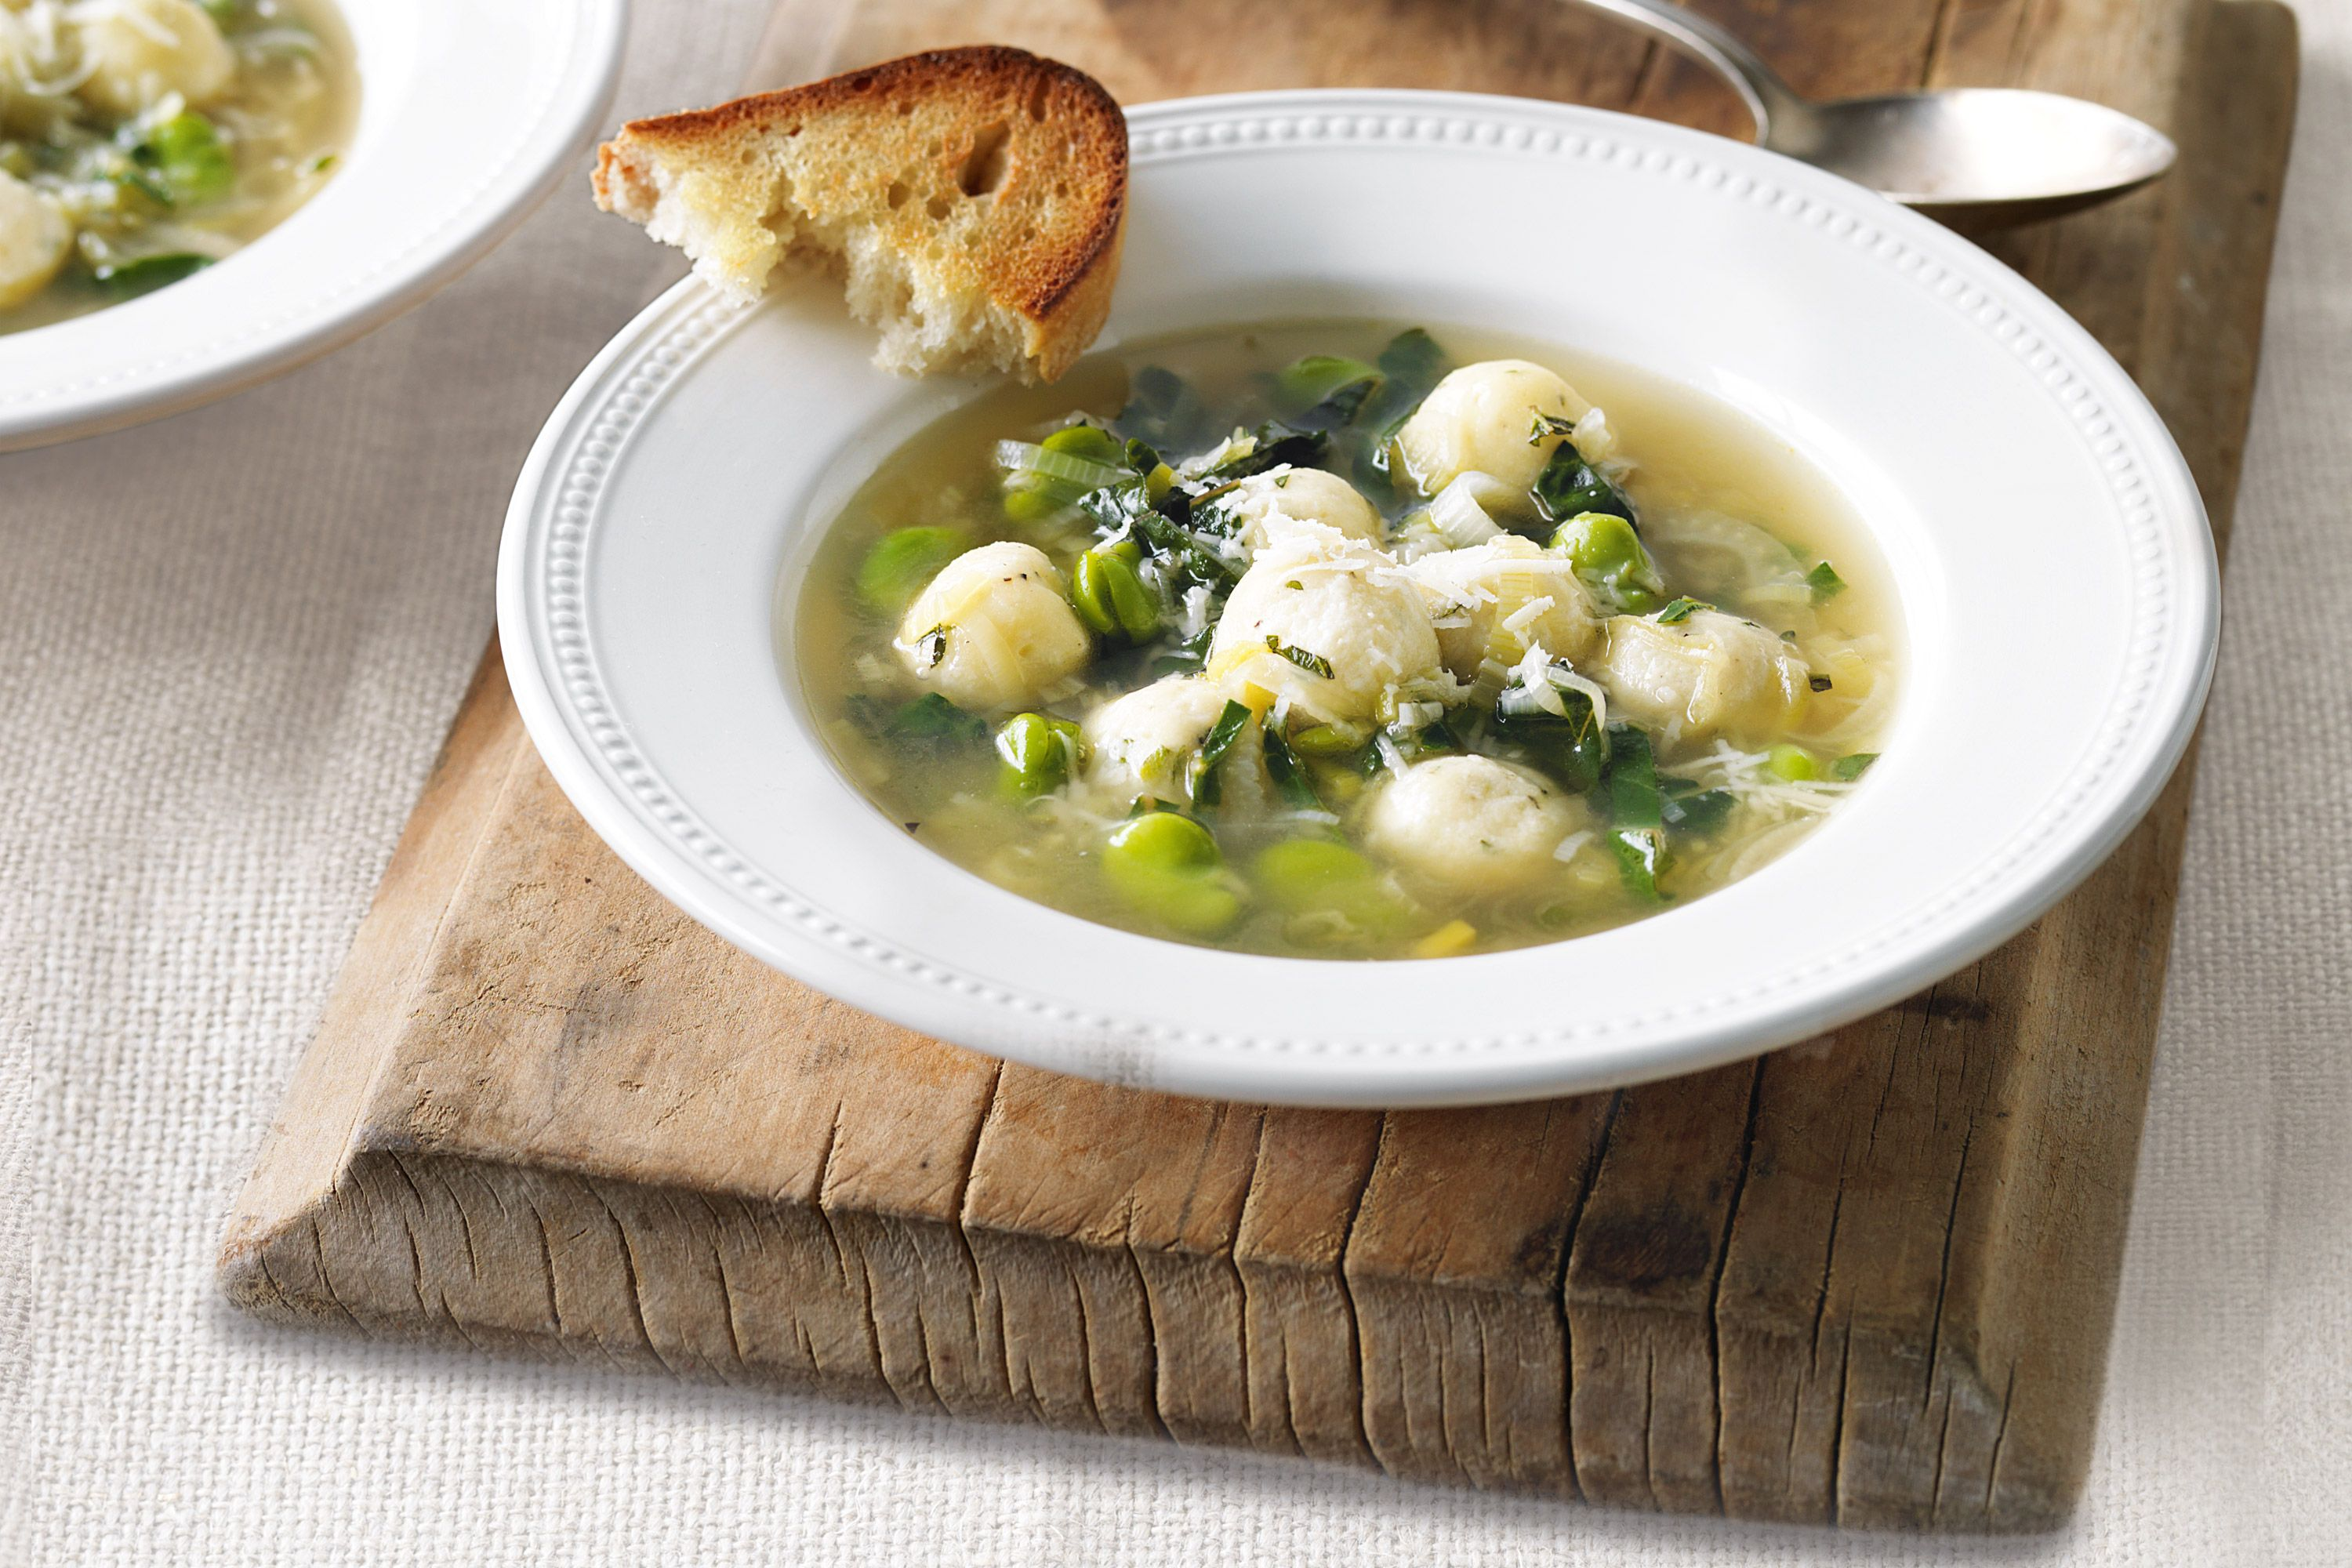 Take soups from starters to the main event with this top recipe. It's hearty, tasty and budget-friendly, too.